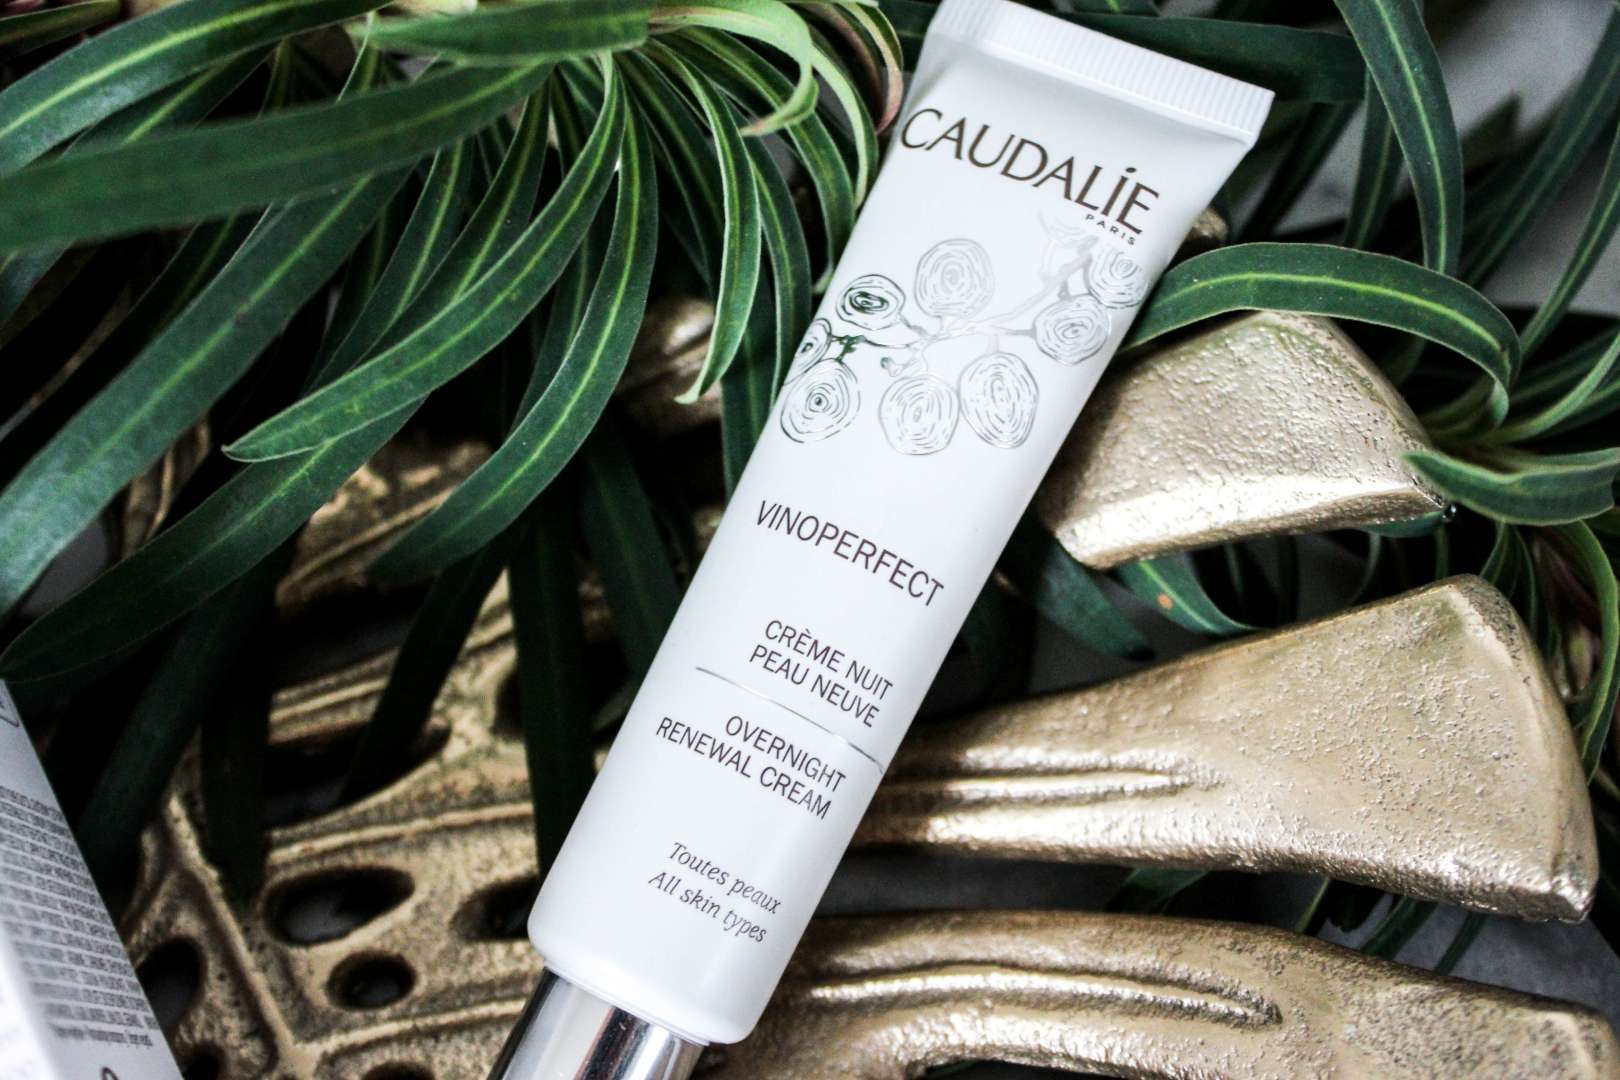 caudalie vinoperfect sérum anti-taches review concours ambassadrice made by f